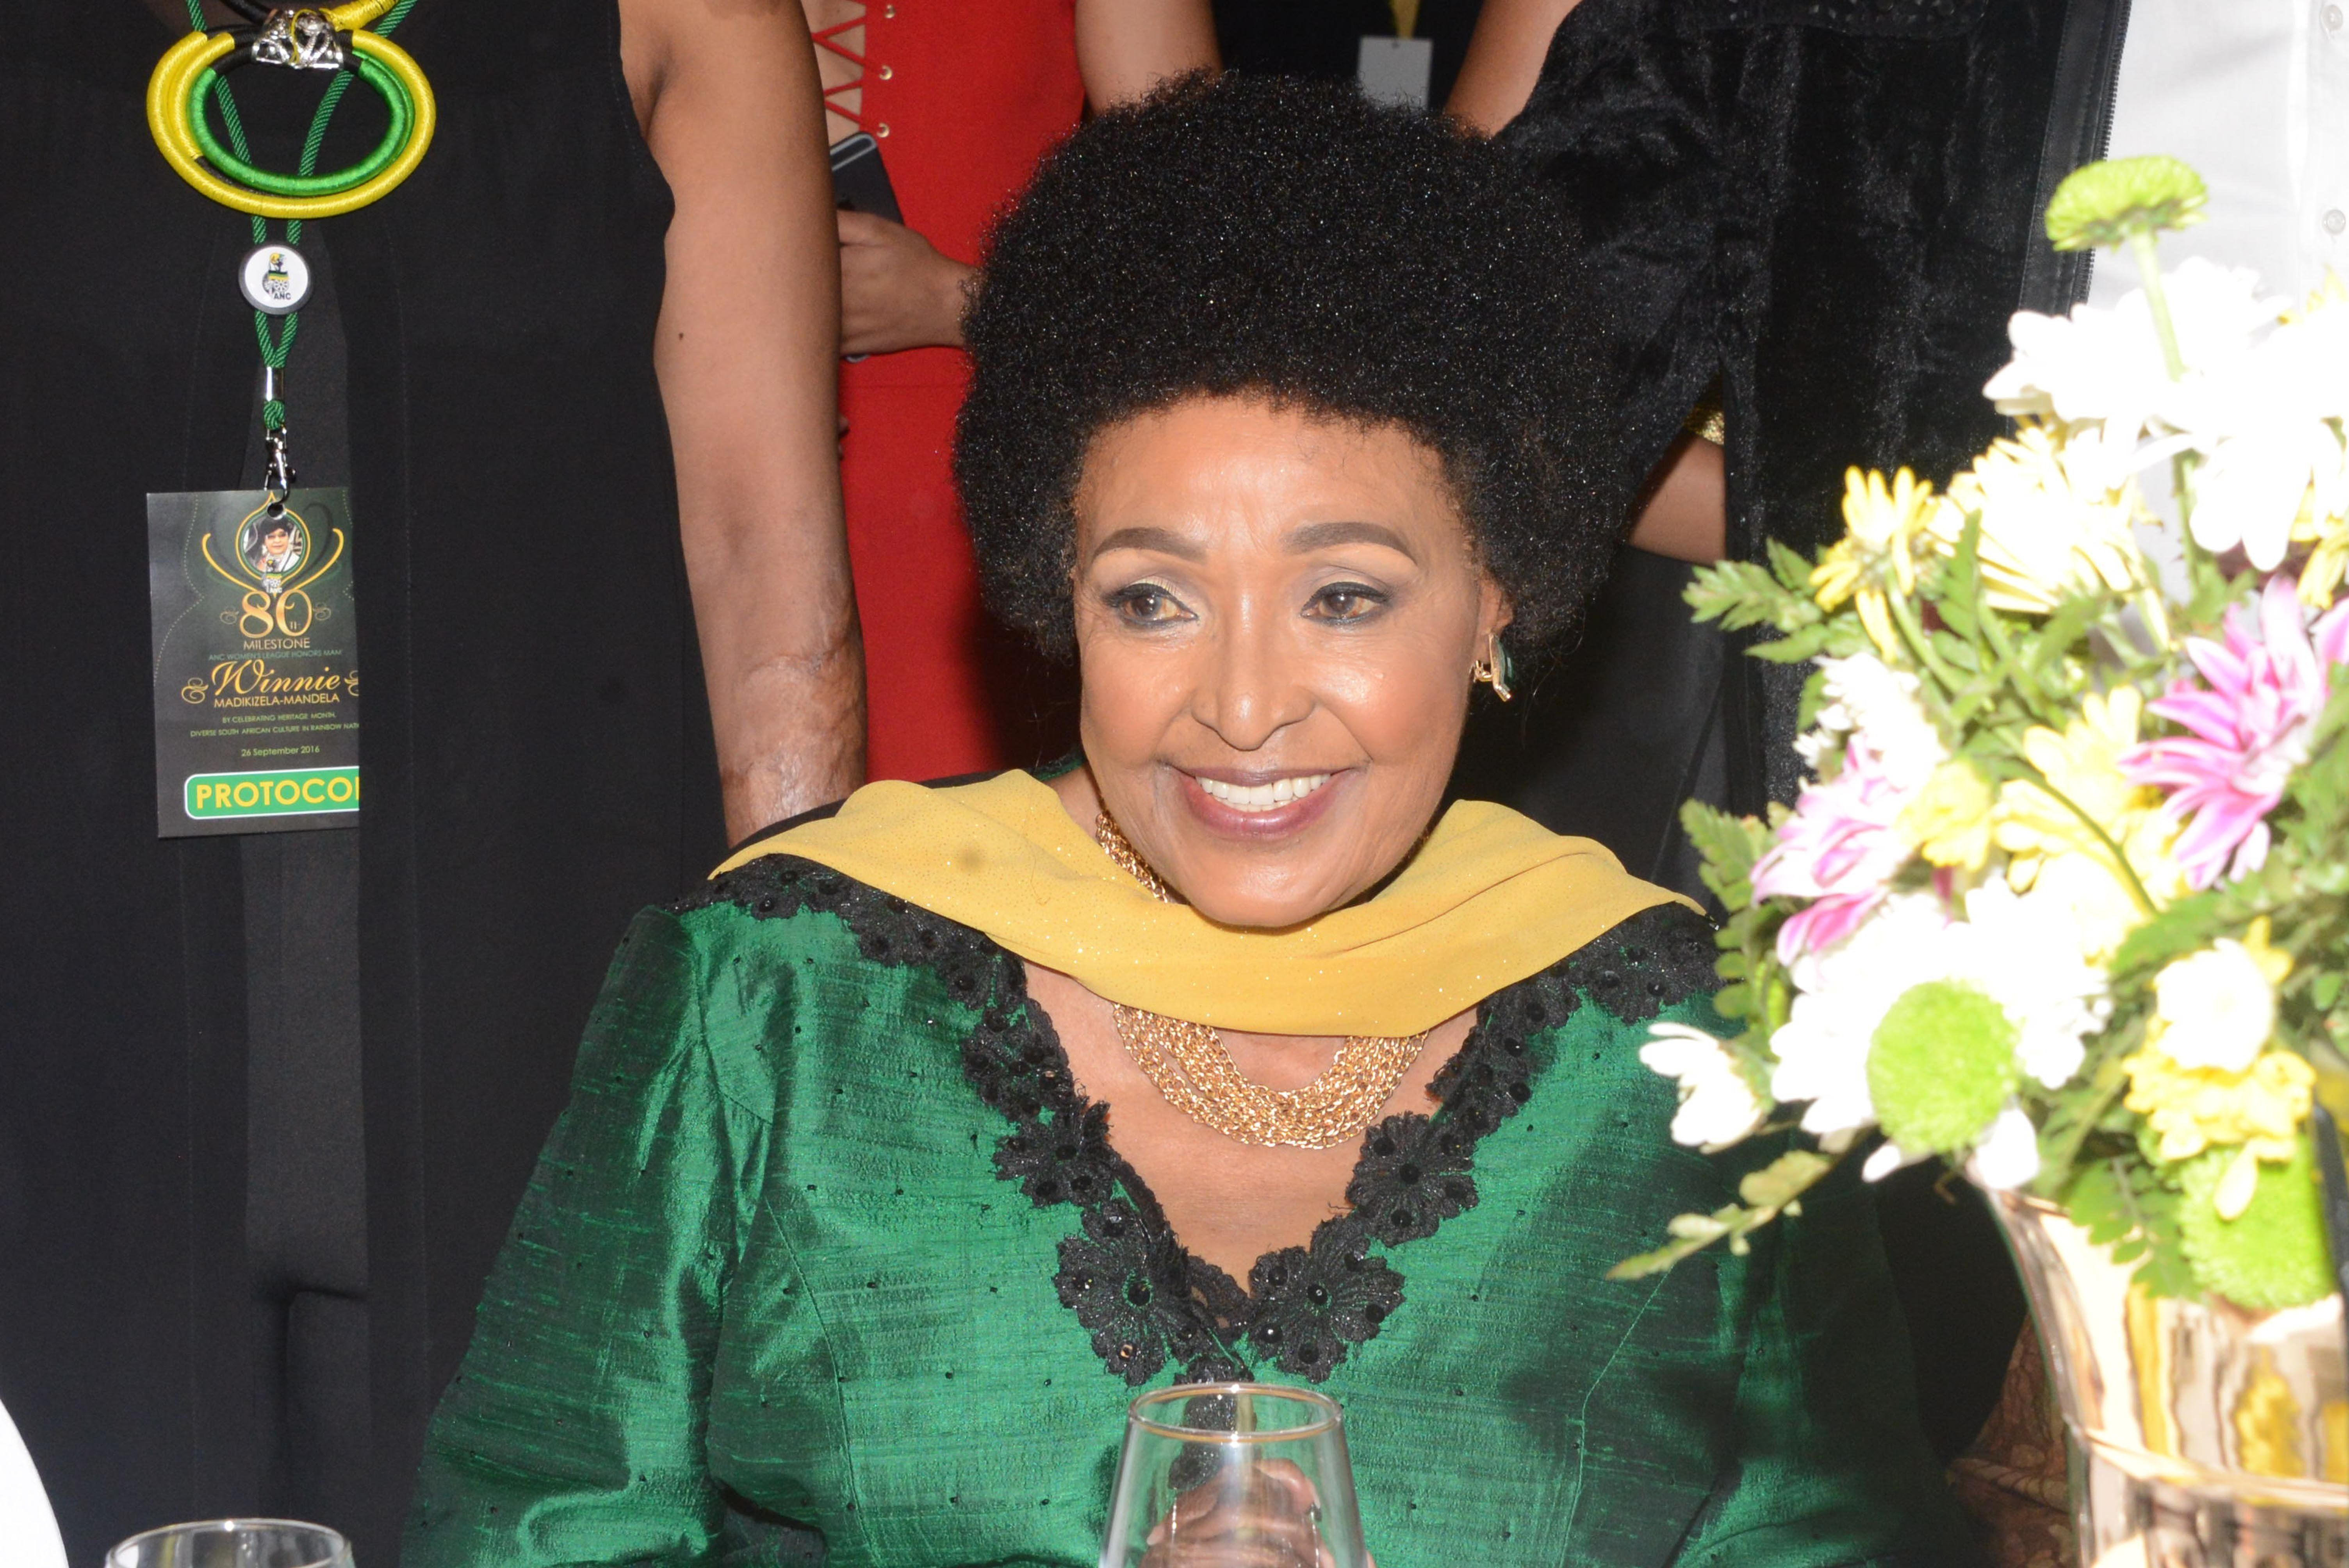 JOHANNESBURG, SOUTH AFRICA  SEPTEMBER 26: (SOUTH AFRICA OUT): Winnie Madikizela-Mandela during her 80th birthday milestone celebrations at the Emperors Palace on September 26, 2016 in Johannesburg, South Africa. The ANC Women's League is celebrating and honouring its stalwart and freedom fighter; Winnie Madikizela-Mandela who was born on 26 September 1936. (Photo by Frennie Shivambu/Gallo Images/Getty Images)